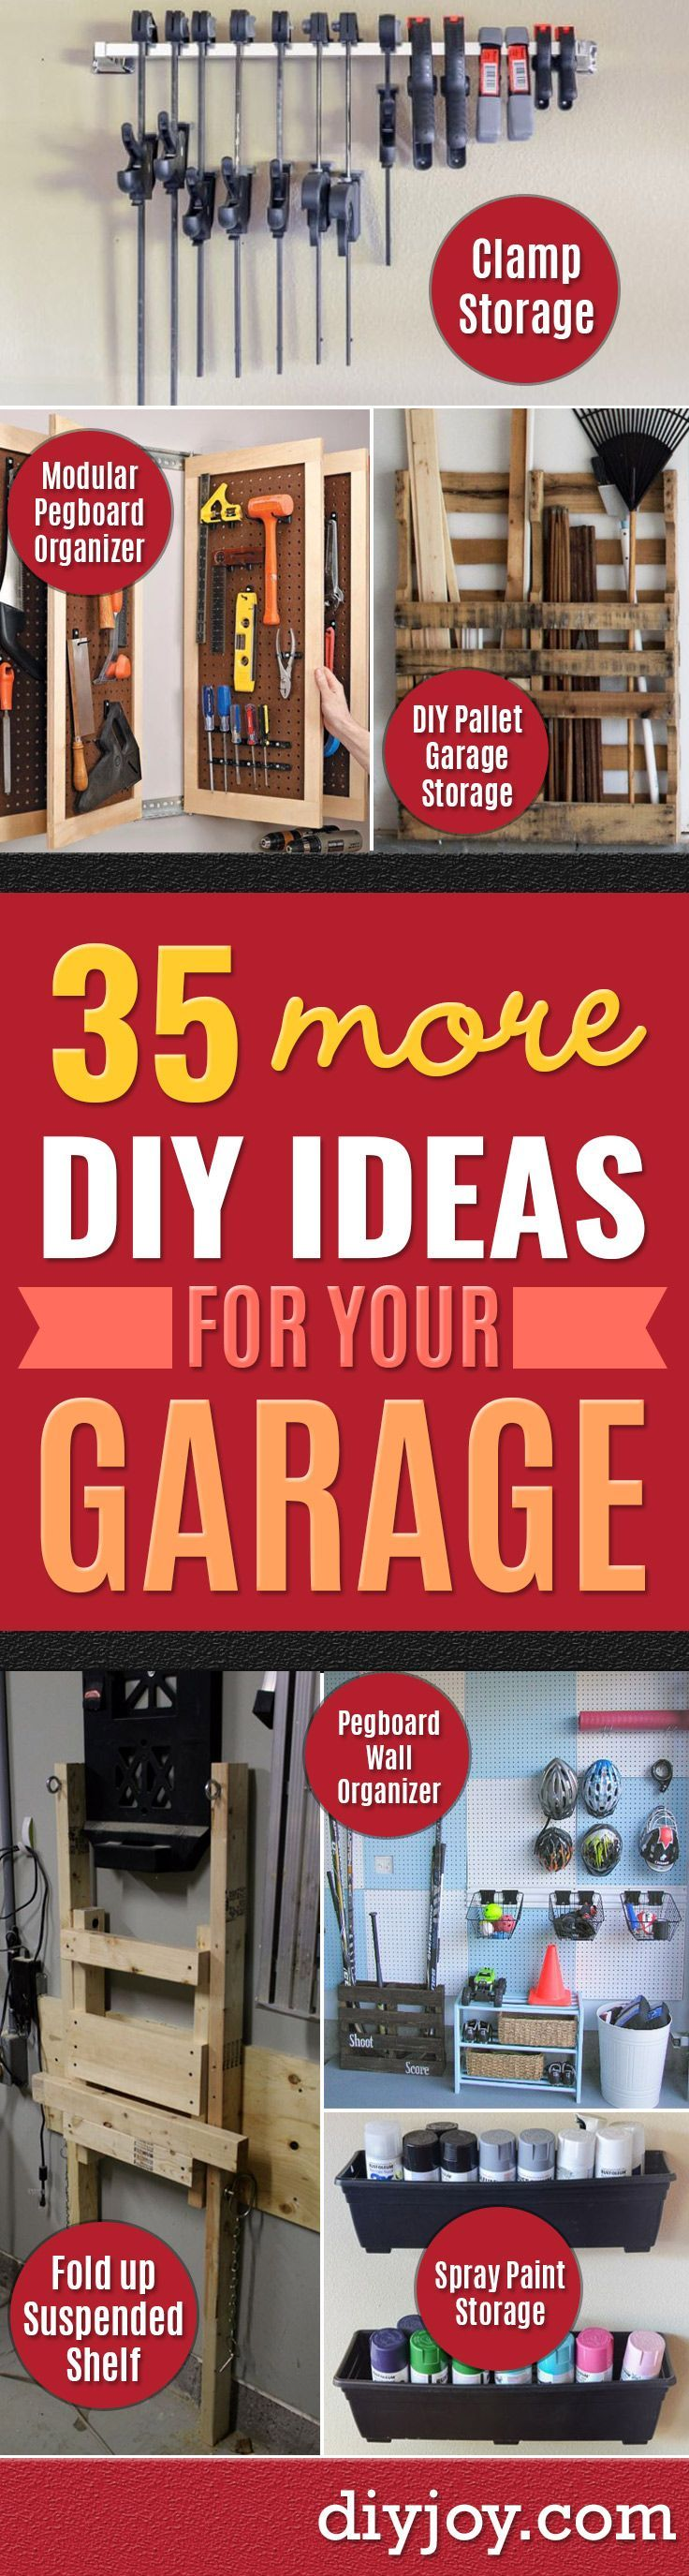 DIY Projects Your Garage Needs - Do It Yourself Garage Makeover Ideas Include Storage, Mudroom, Organization, Shelves, and Project Plans for Cool New Garage Decor - Easy Home Decor on A Budget http://diyjoy.com/diy-garage-ideas